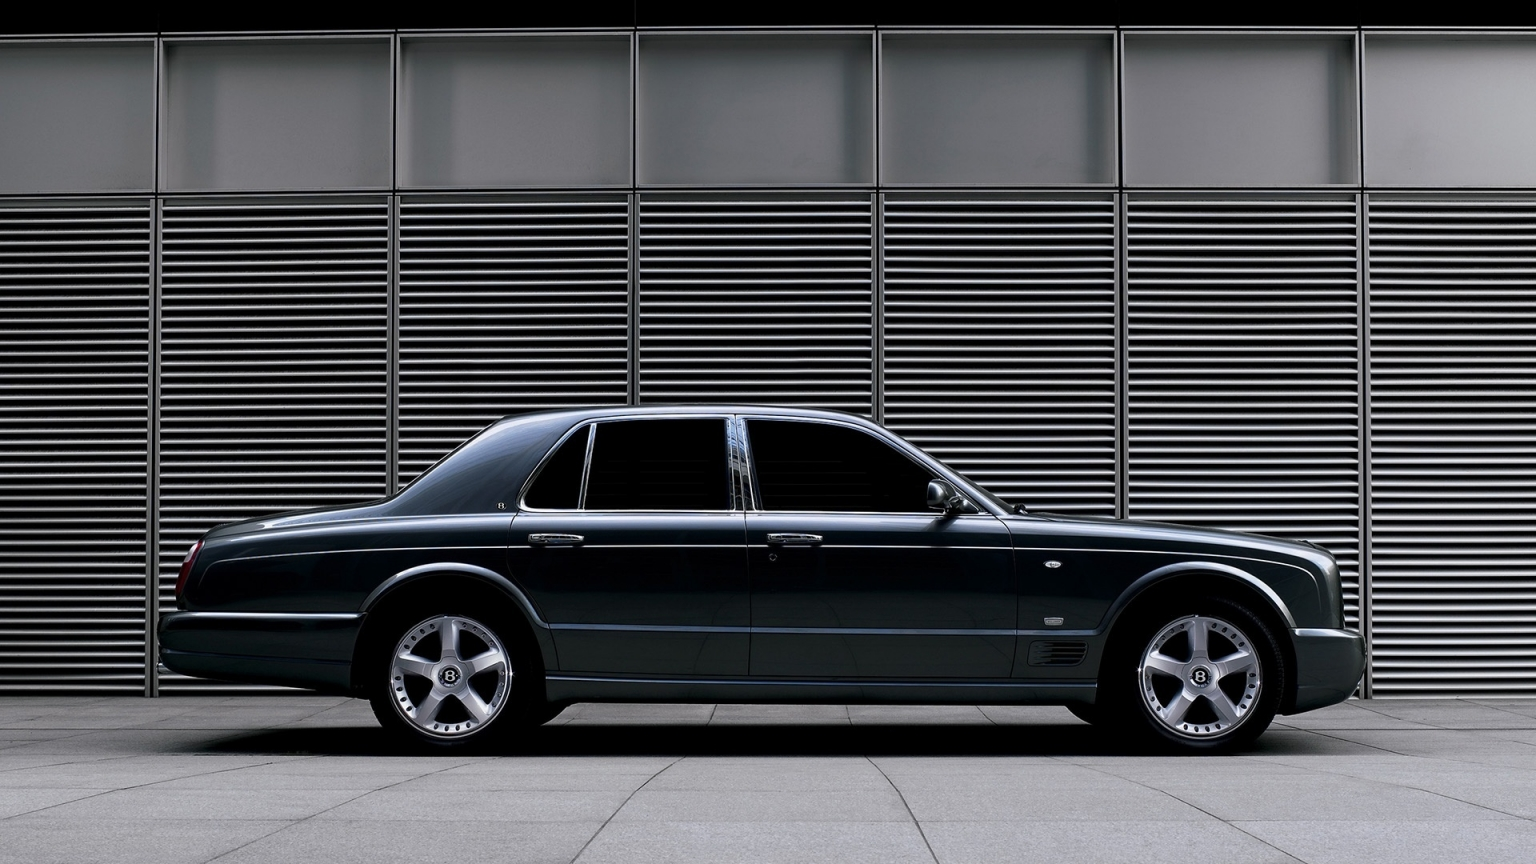 Bentley Arnage Side Closeup 2007 for 1536 x 864 HDTV resolution